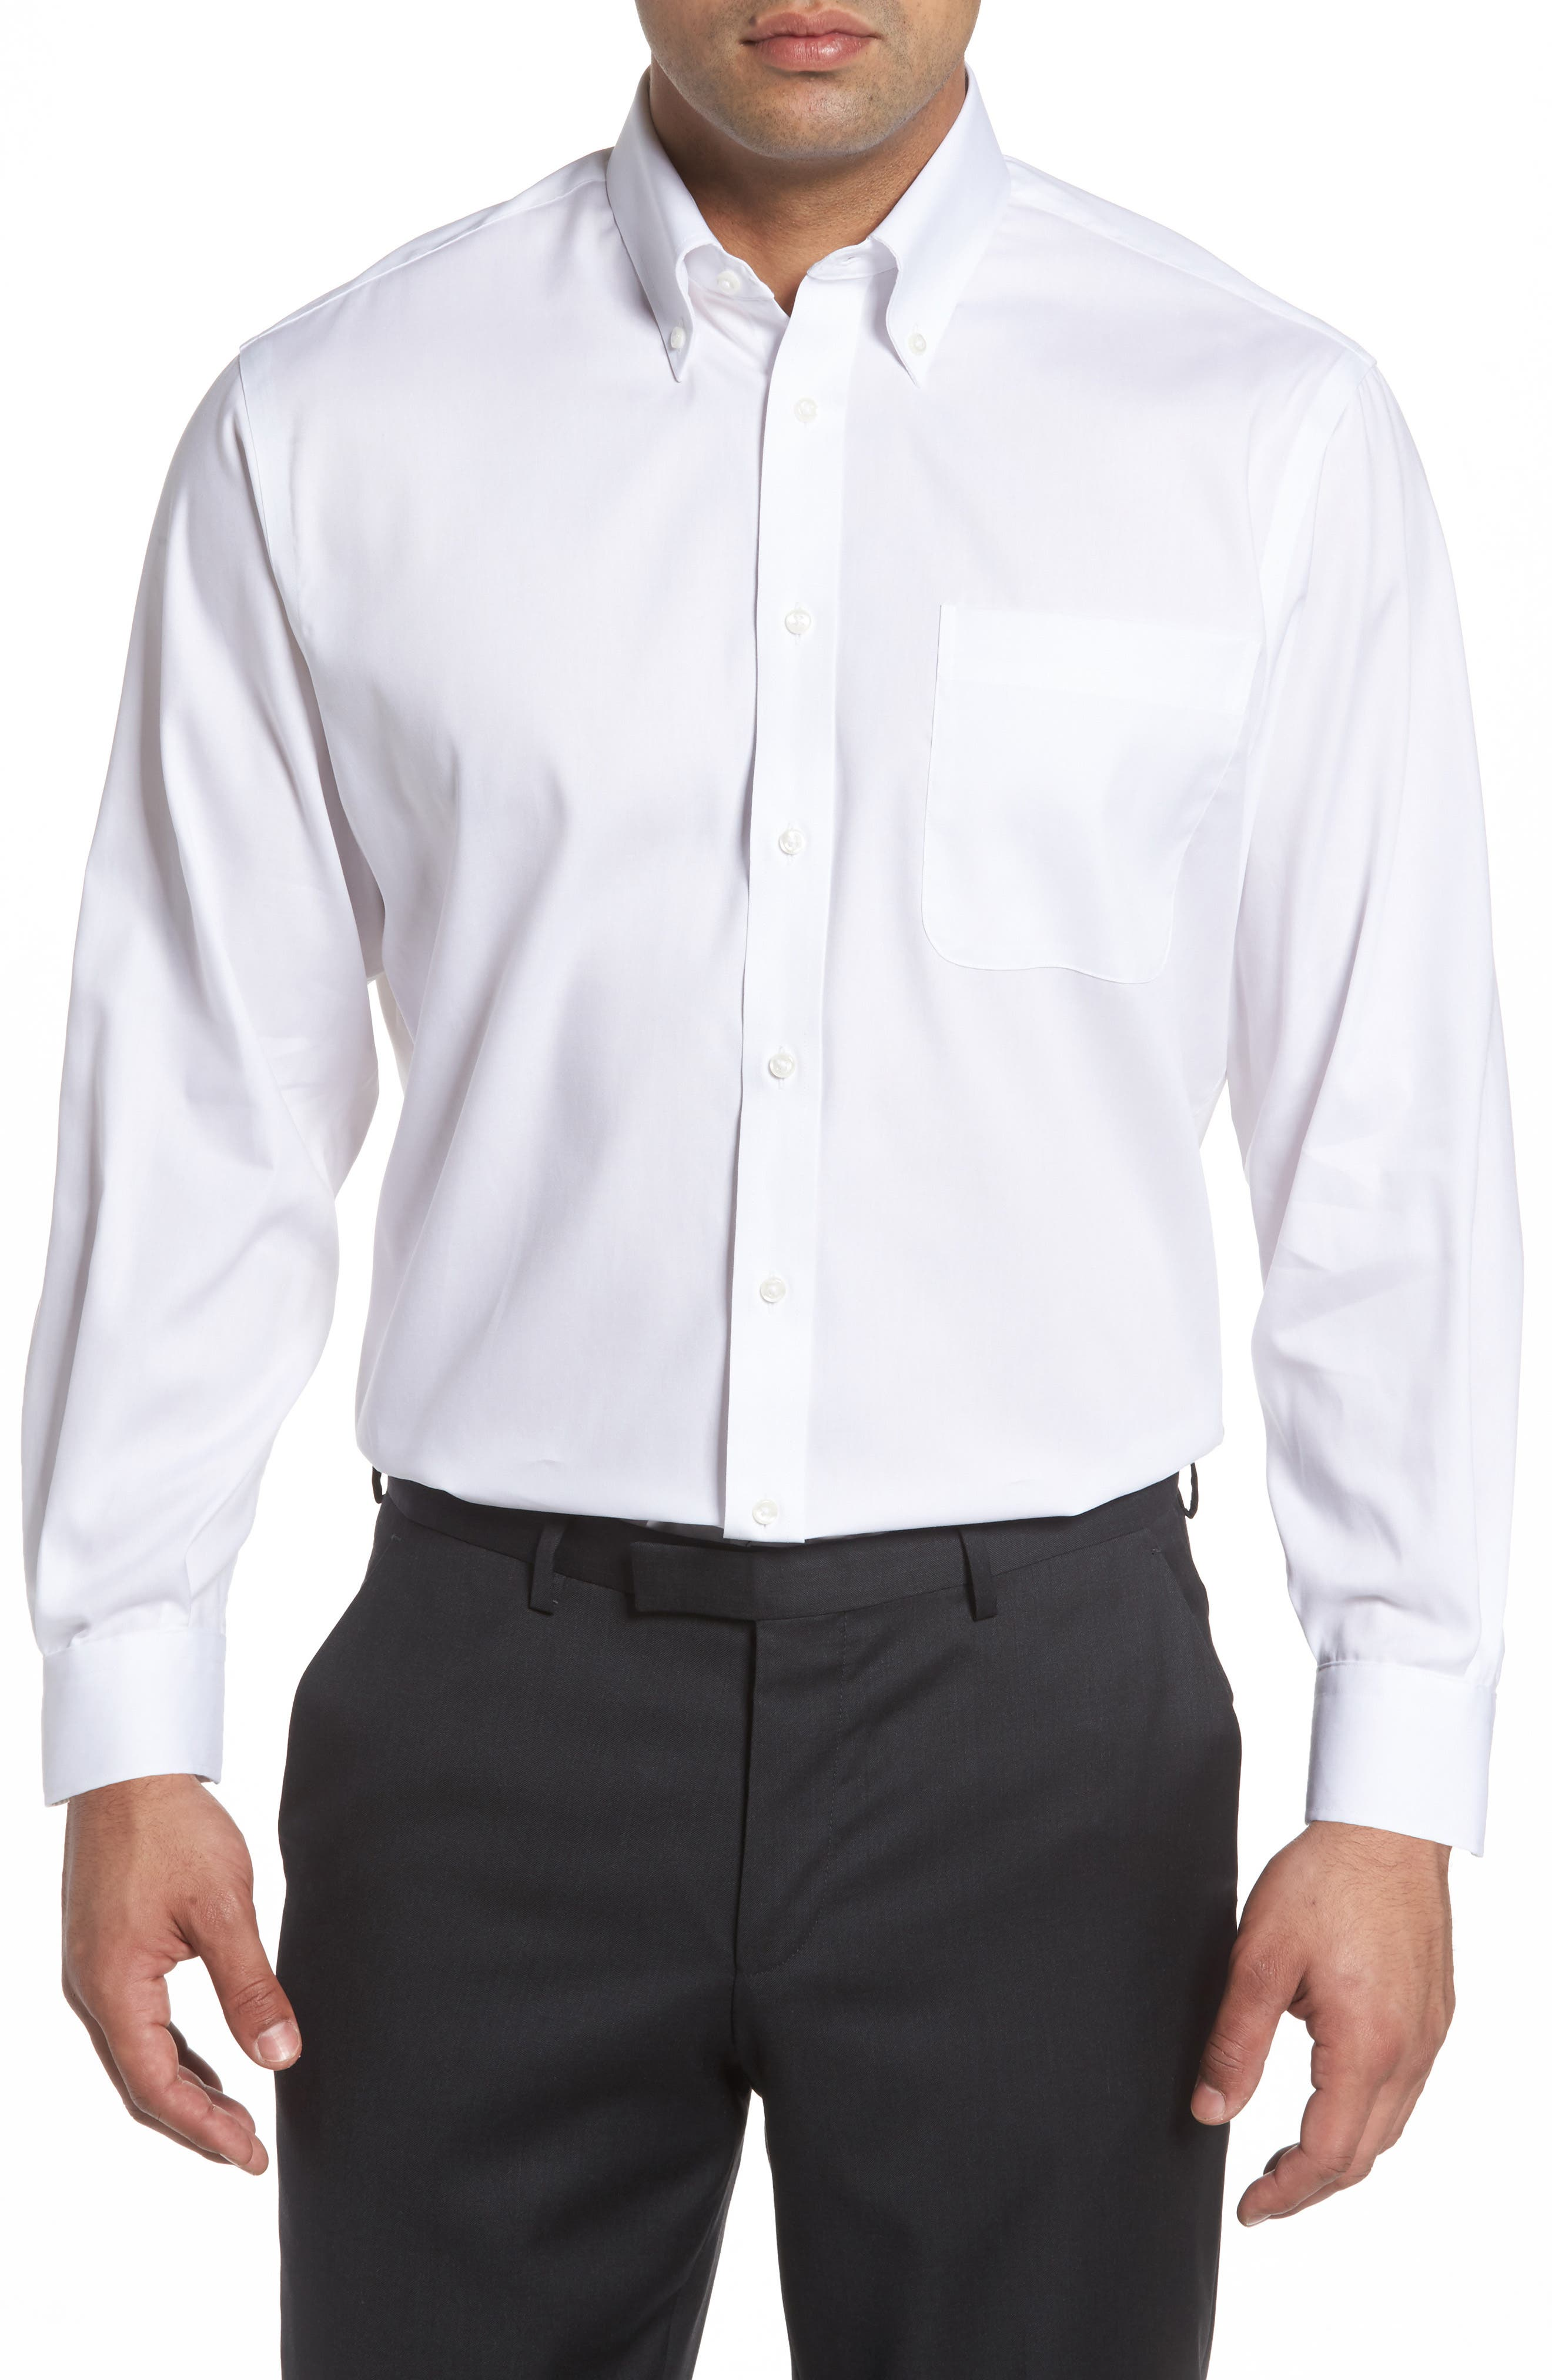 Main Image - Nordstrom Men's Shop Classic Fit Non-Iron Solid Dress Shirt